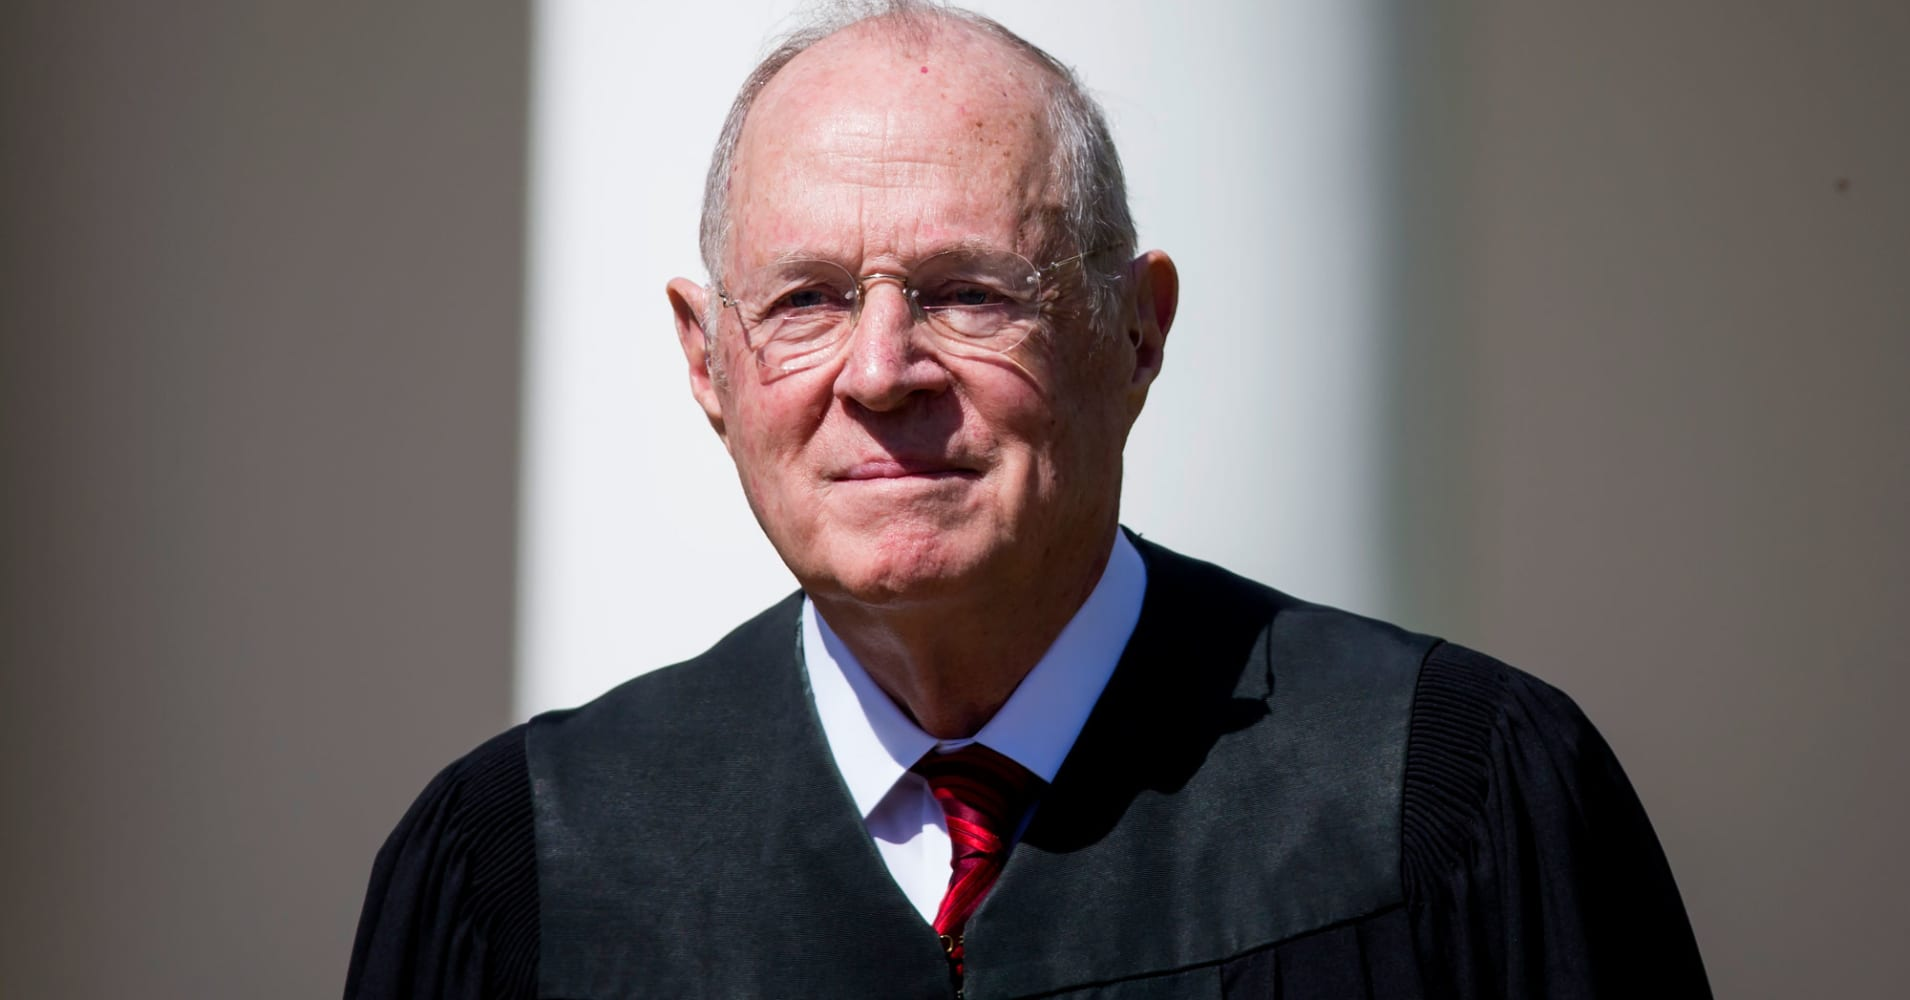 Anthony Kennedy retiring from Supreme Court